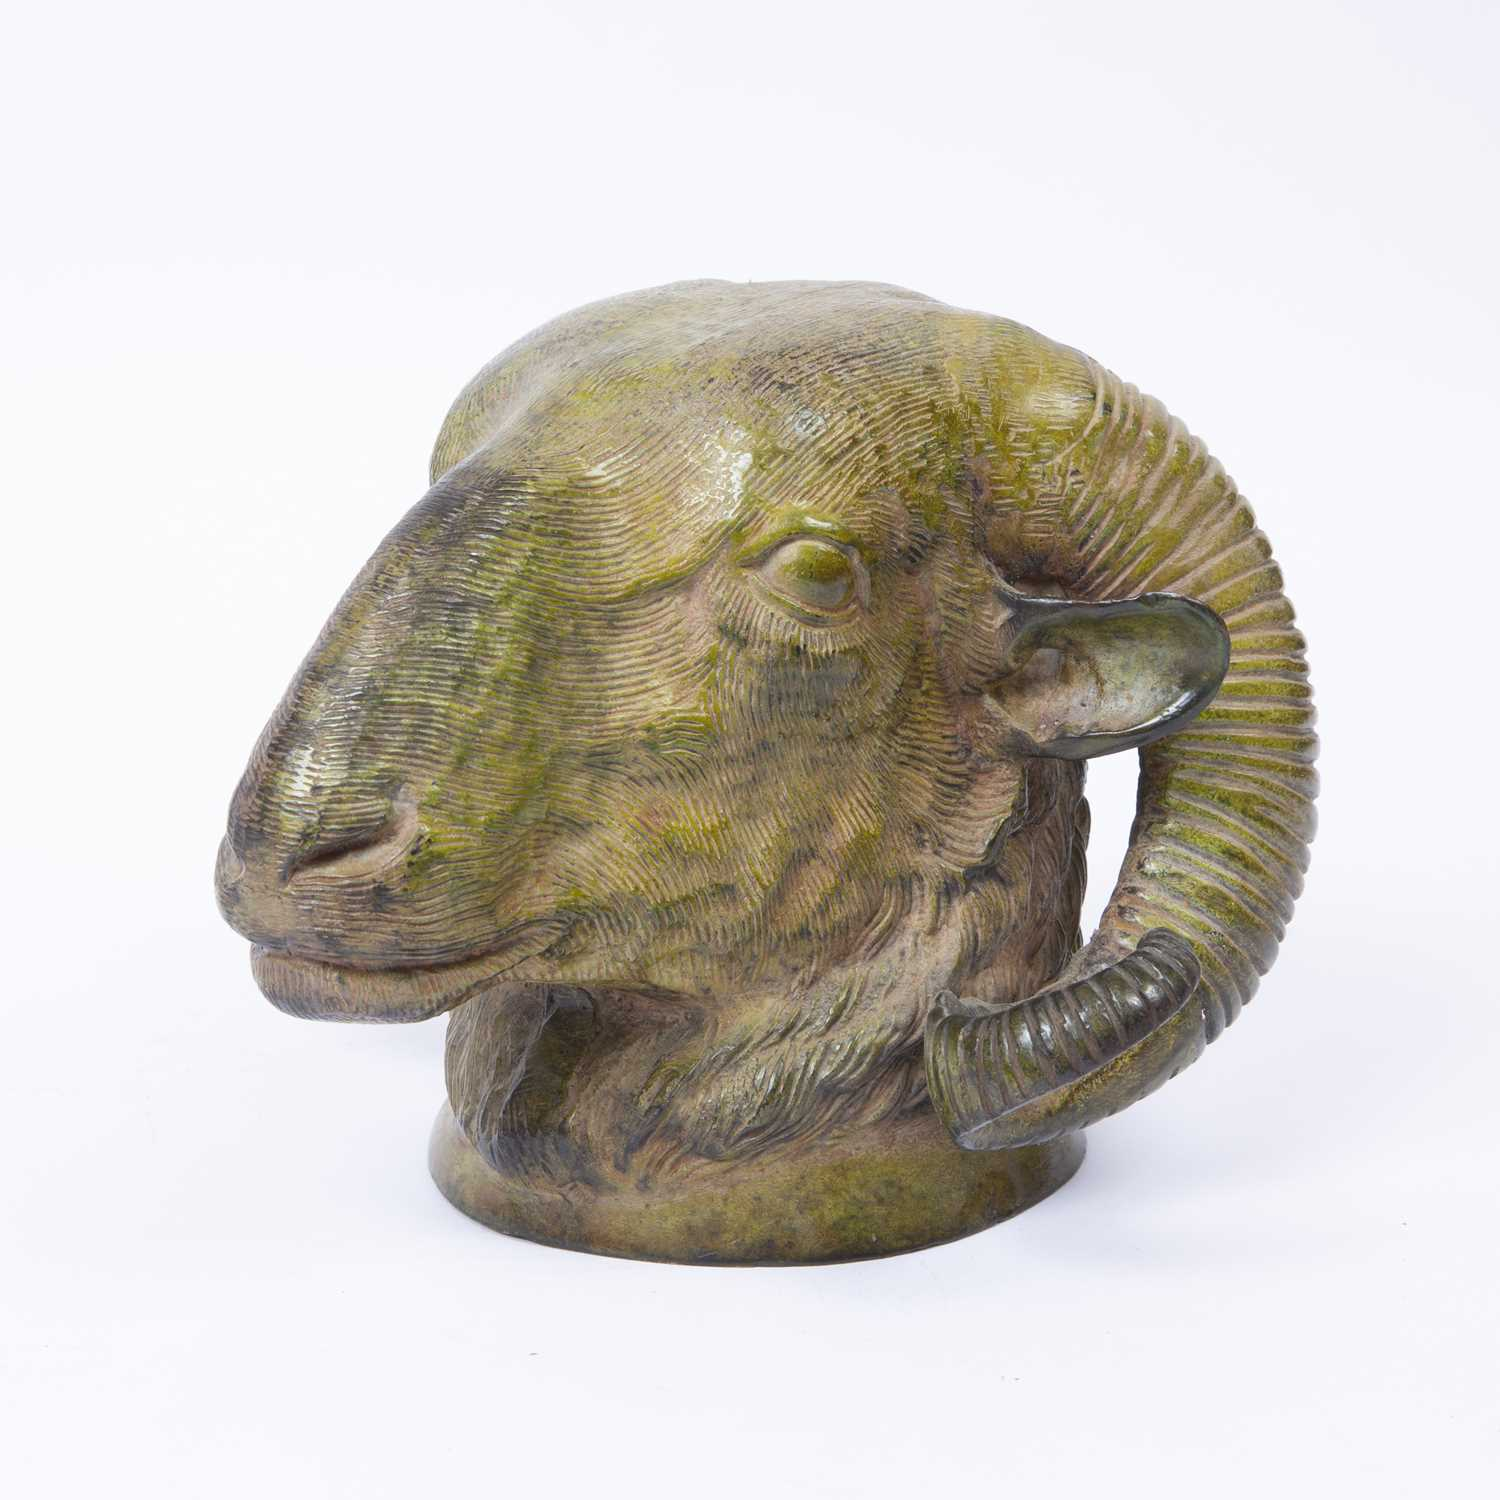 A 19th century bronze ram's head wall mount with green patina, 15cm high - Image 2 of 3